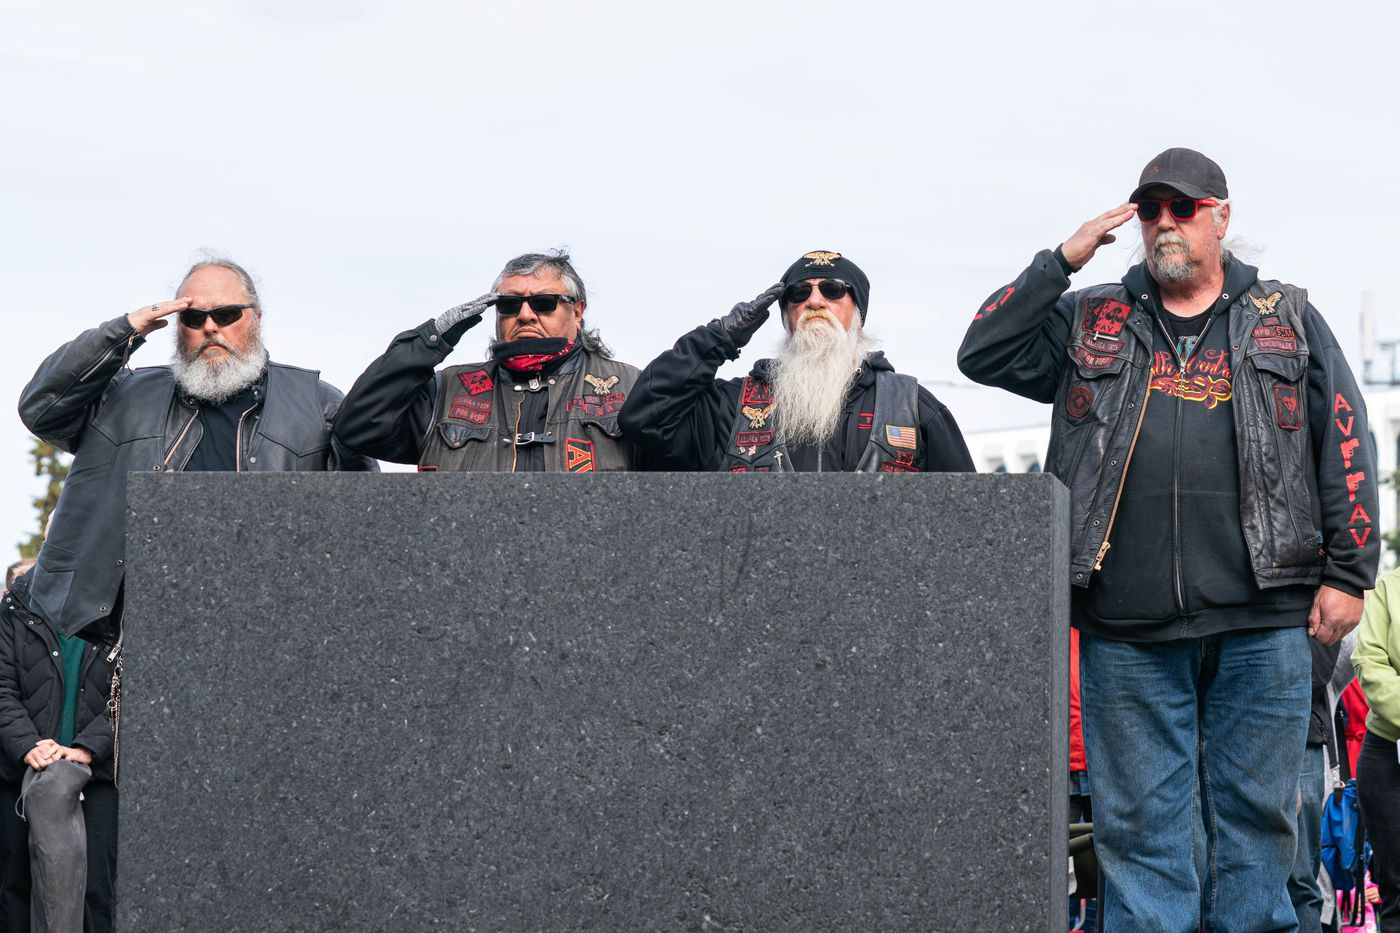 Alaska Vets Motorcycle Club salute the Fallen Warrior statue at the Anchorage Veterans Memorial on Delaney Park Strip on Monday, May 25, 2020 during a Memorial Day observance. (Loren Holmes / ADN)